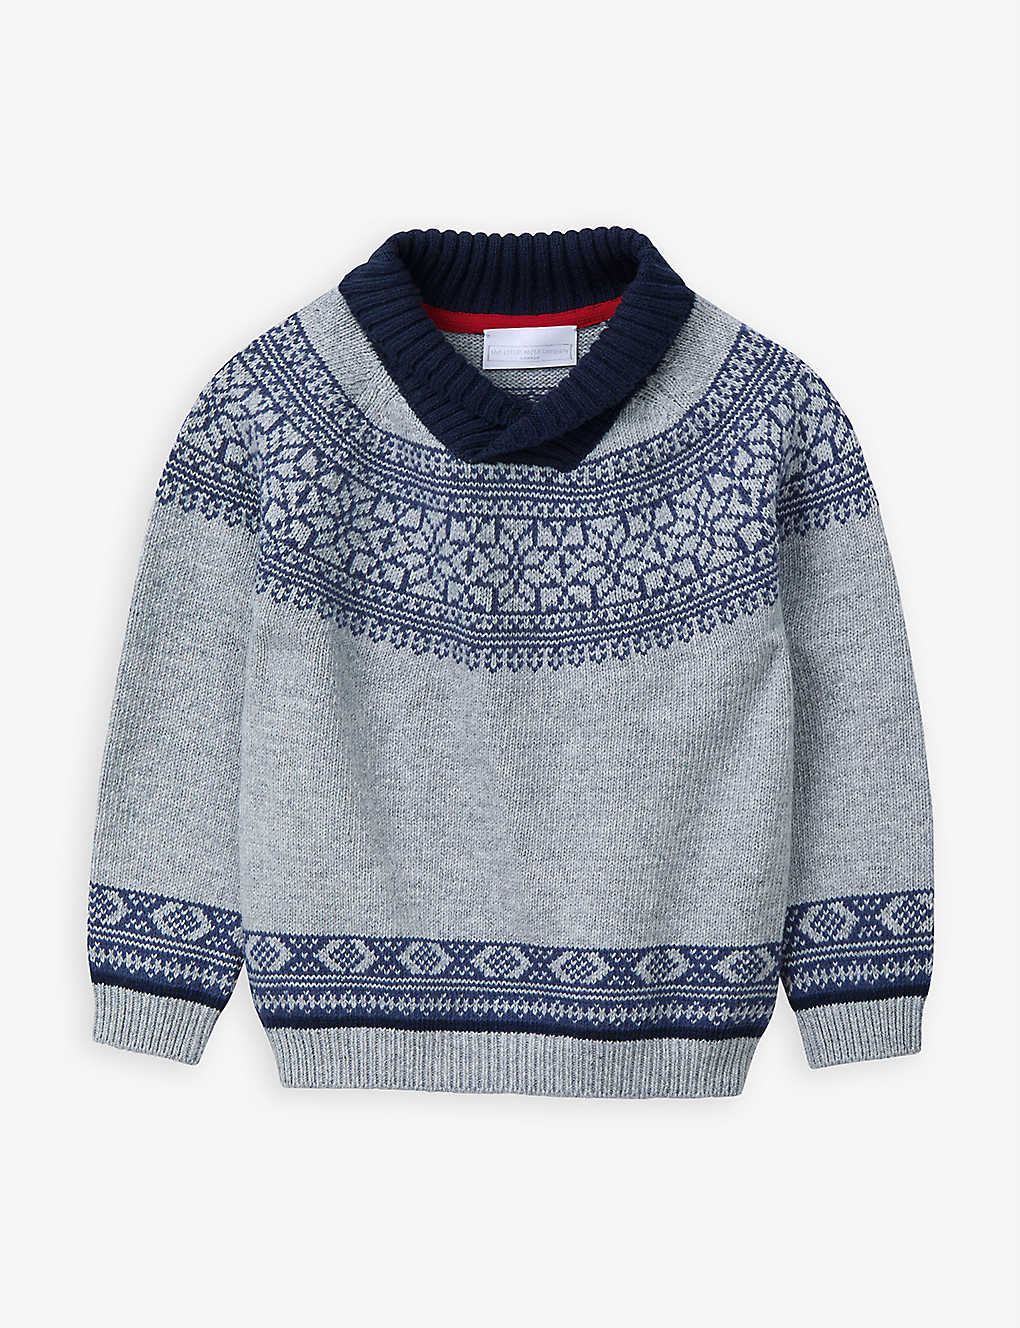 THE LITTLE WHITE COMPANY: Fair Isle knitted cotton-blend jumper 1-6 years